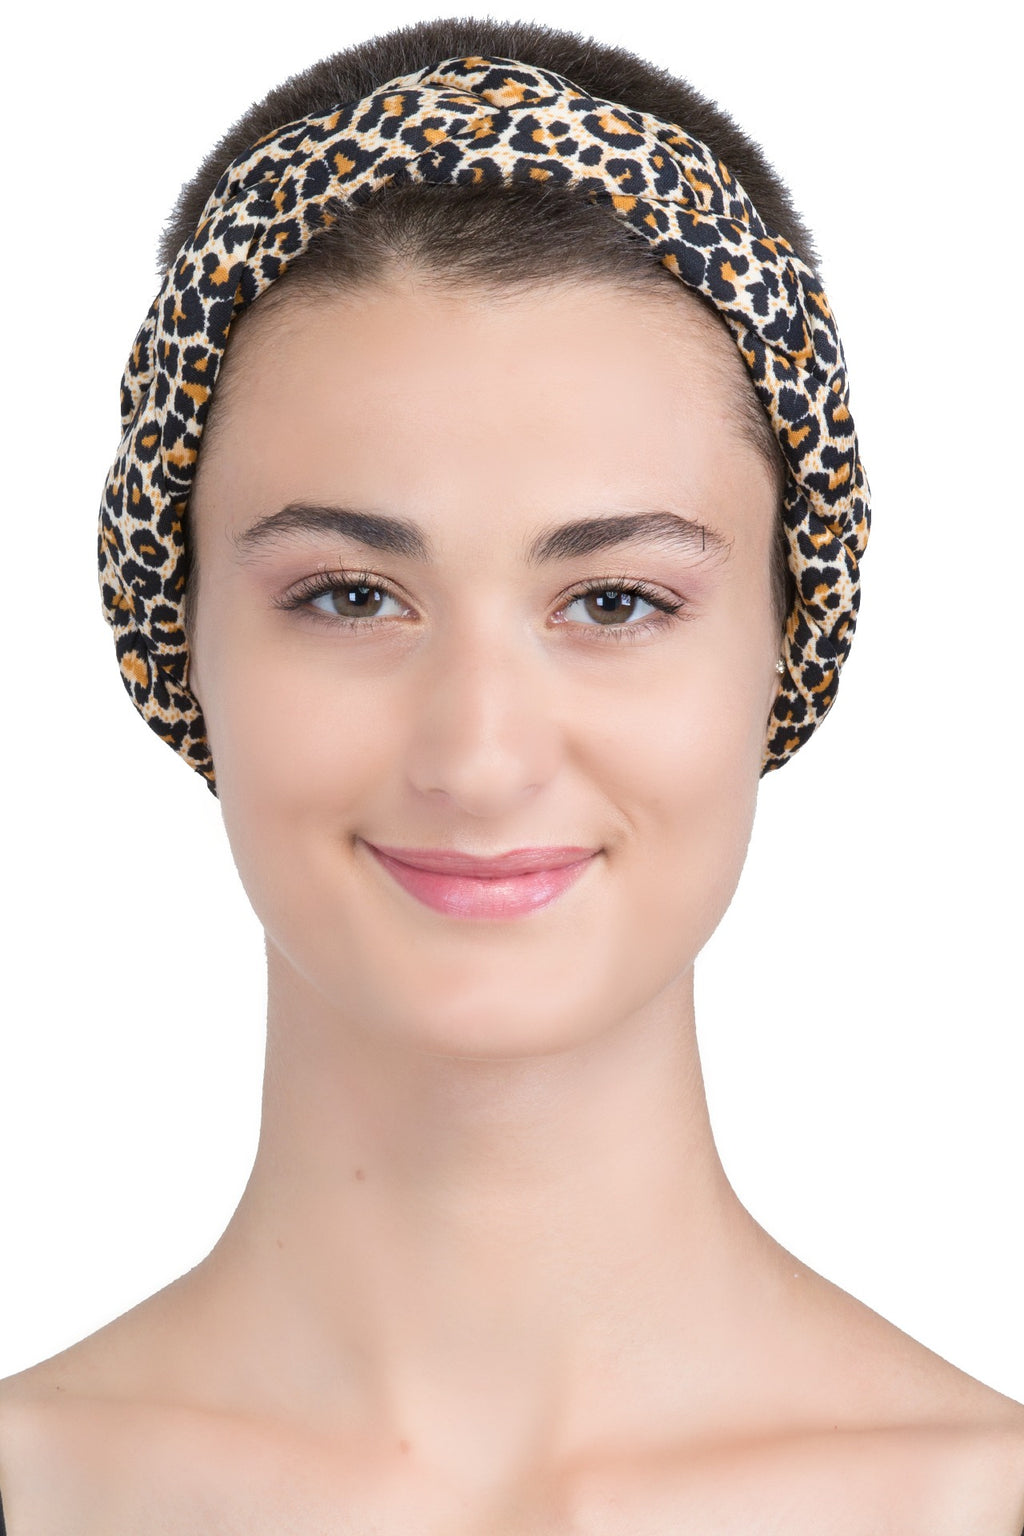 Braided Hairband, Headband (Leopard)